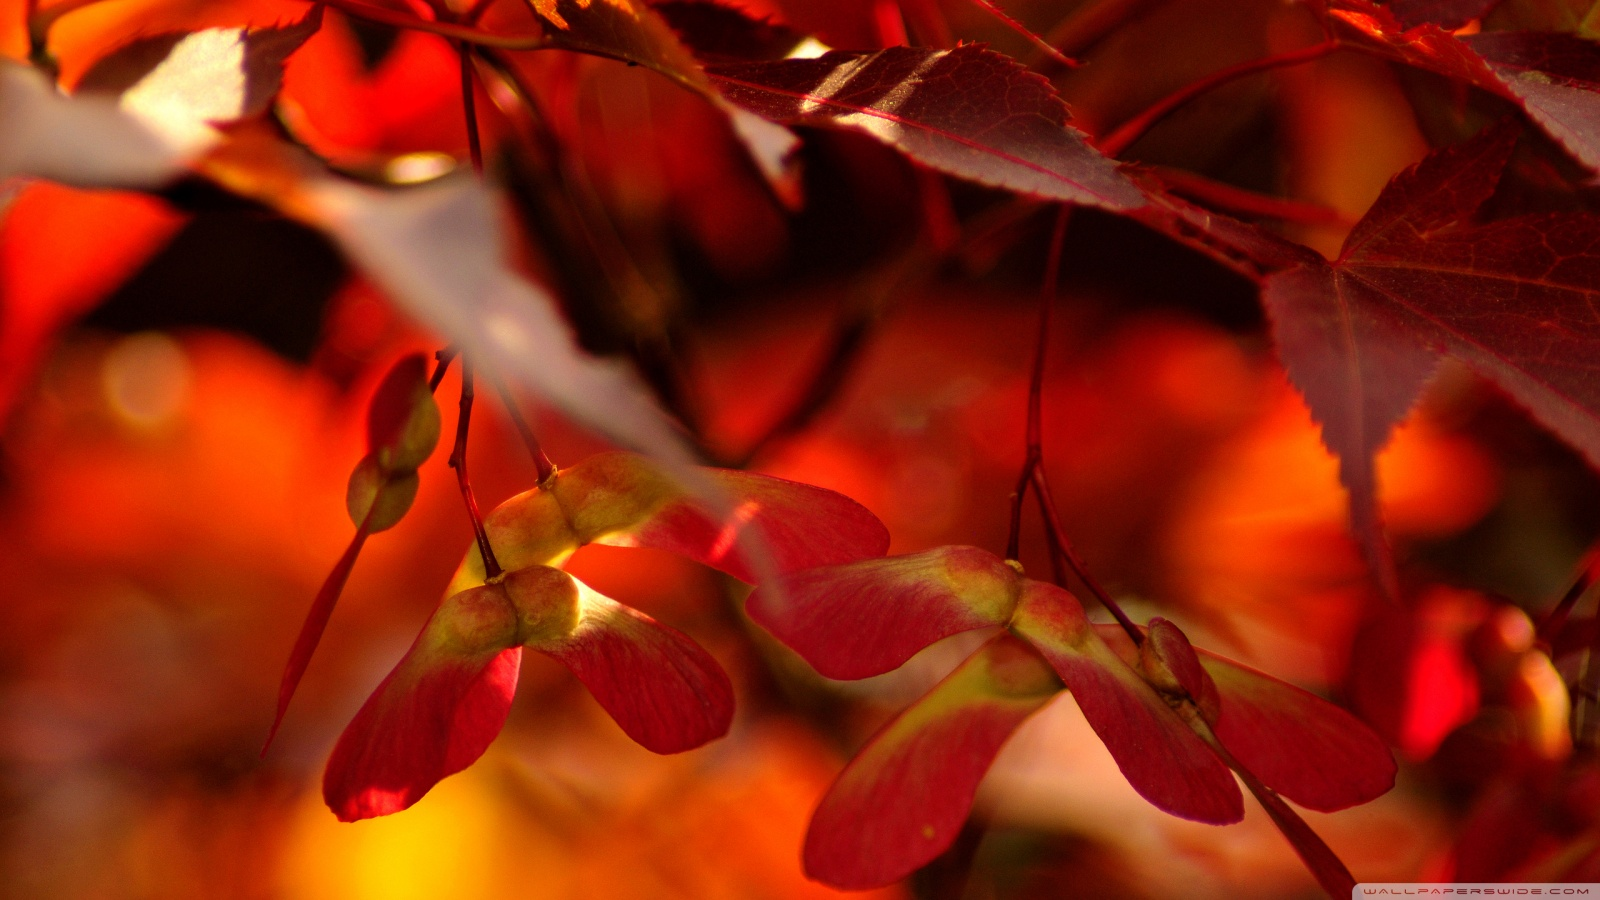 Fall Ipad Wallpaper Hd Red Autumn Leaves Close Up 4k Hd Desktop Wallpaper For 4k